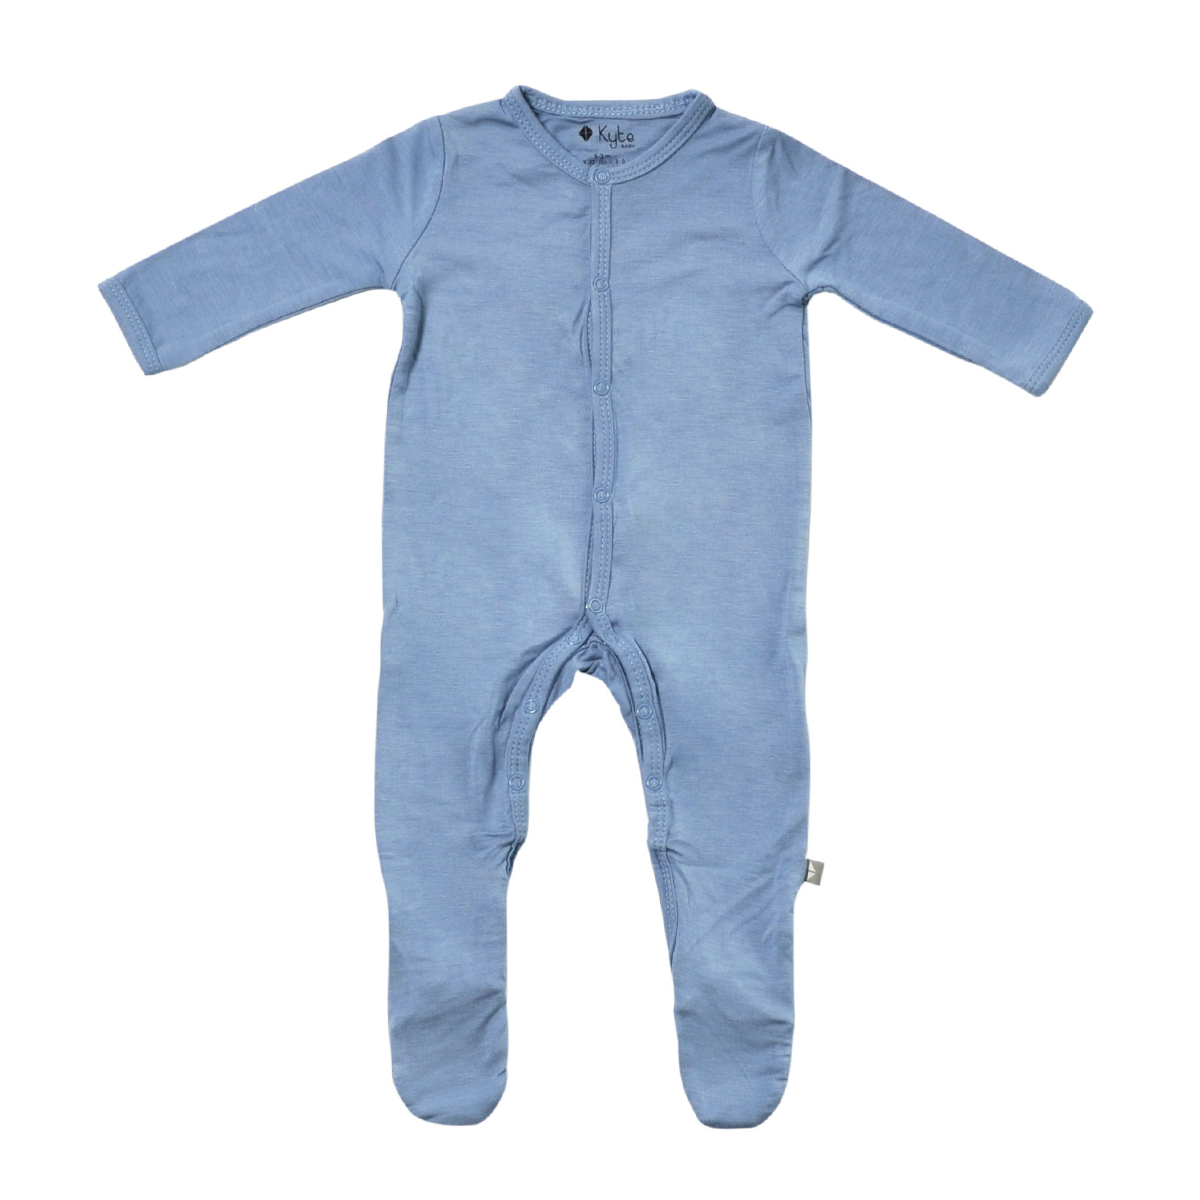 0-24 Months KYTE BABY Footies Baby Footed Pajamas Made of Soft Organic Bamboo Material Solid Colors